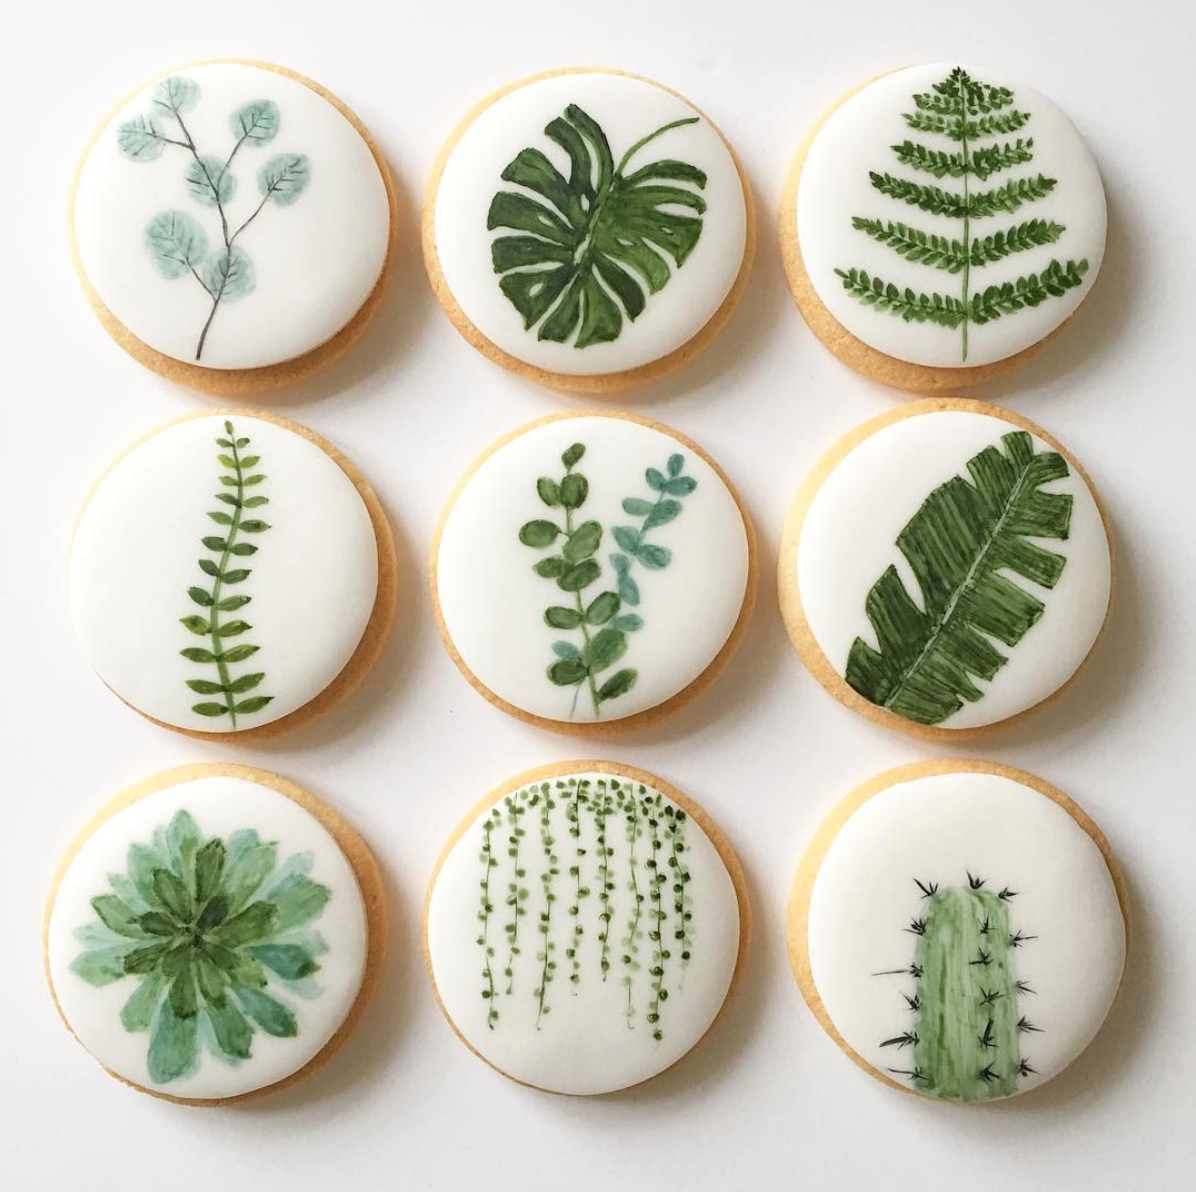 Watercolor Botanical Sugar Cookies by Lemon Tree Cakes